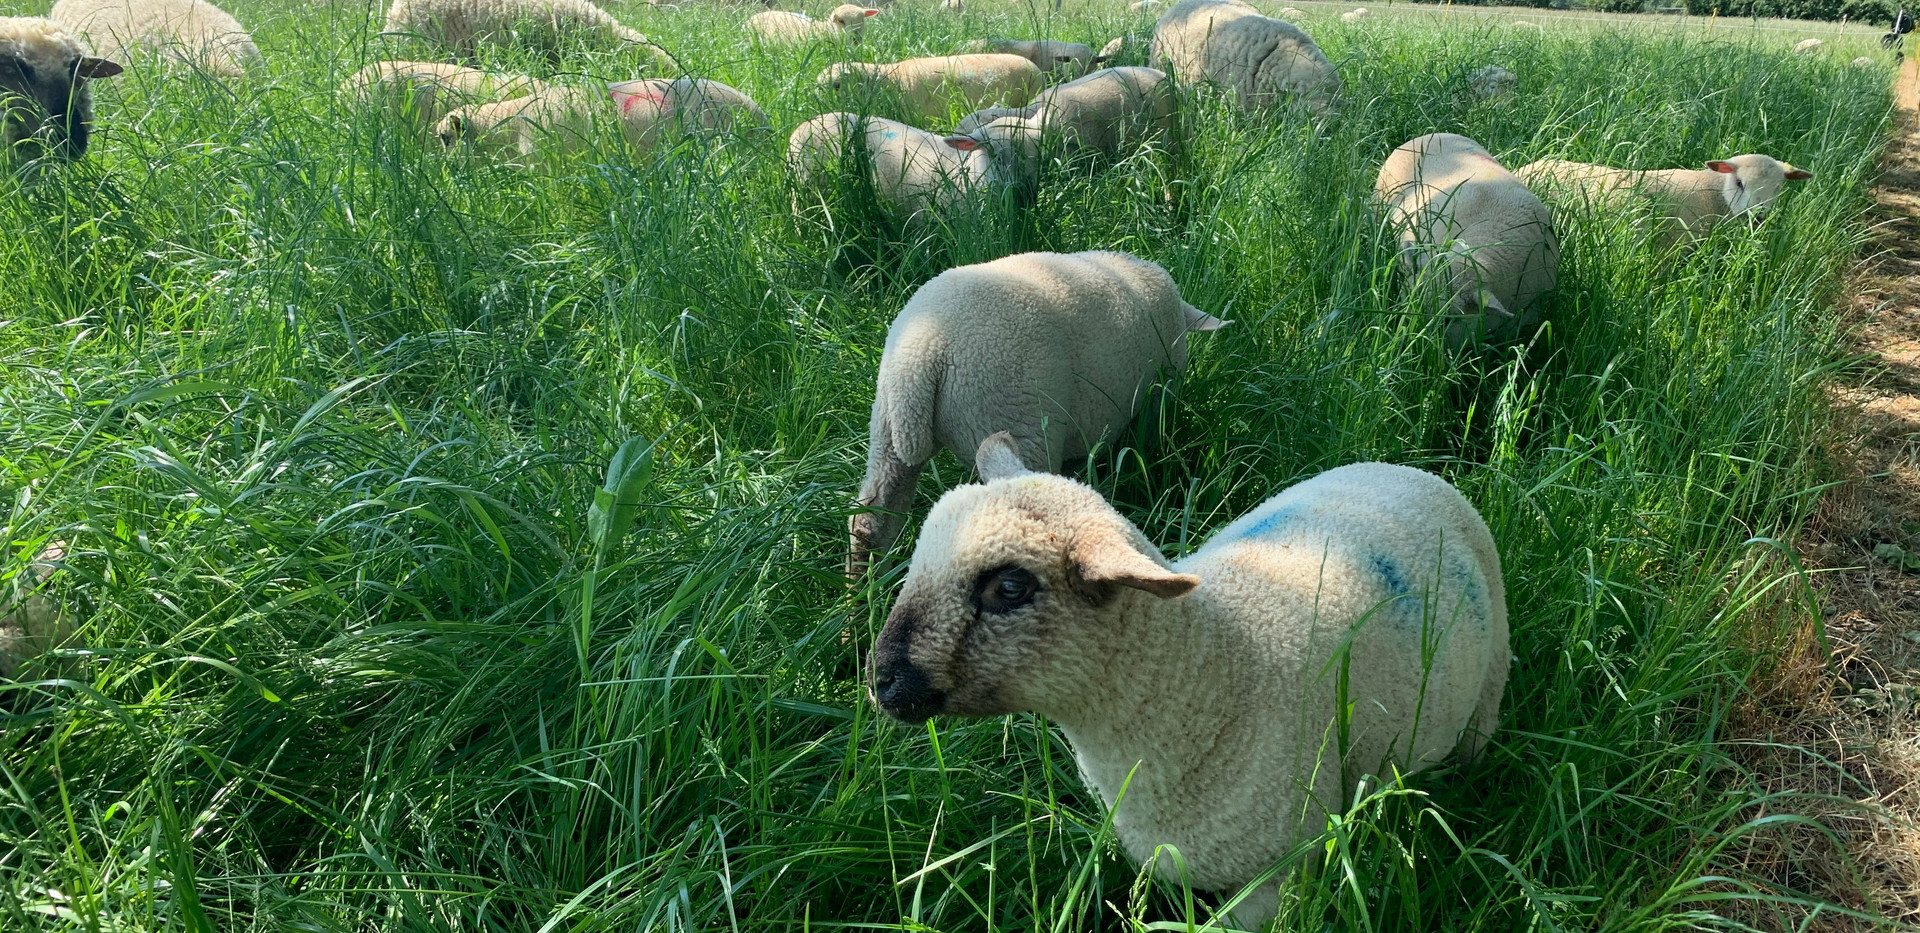 Young lambs & their mothers in the herbal ley